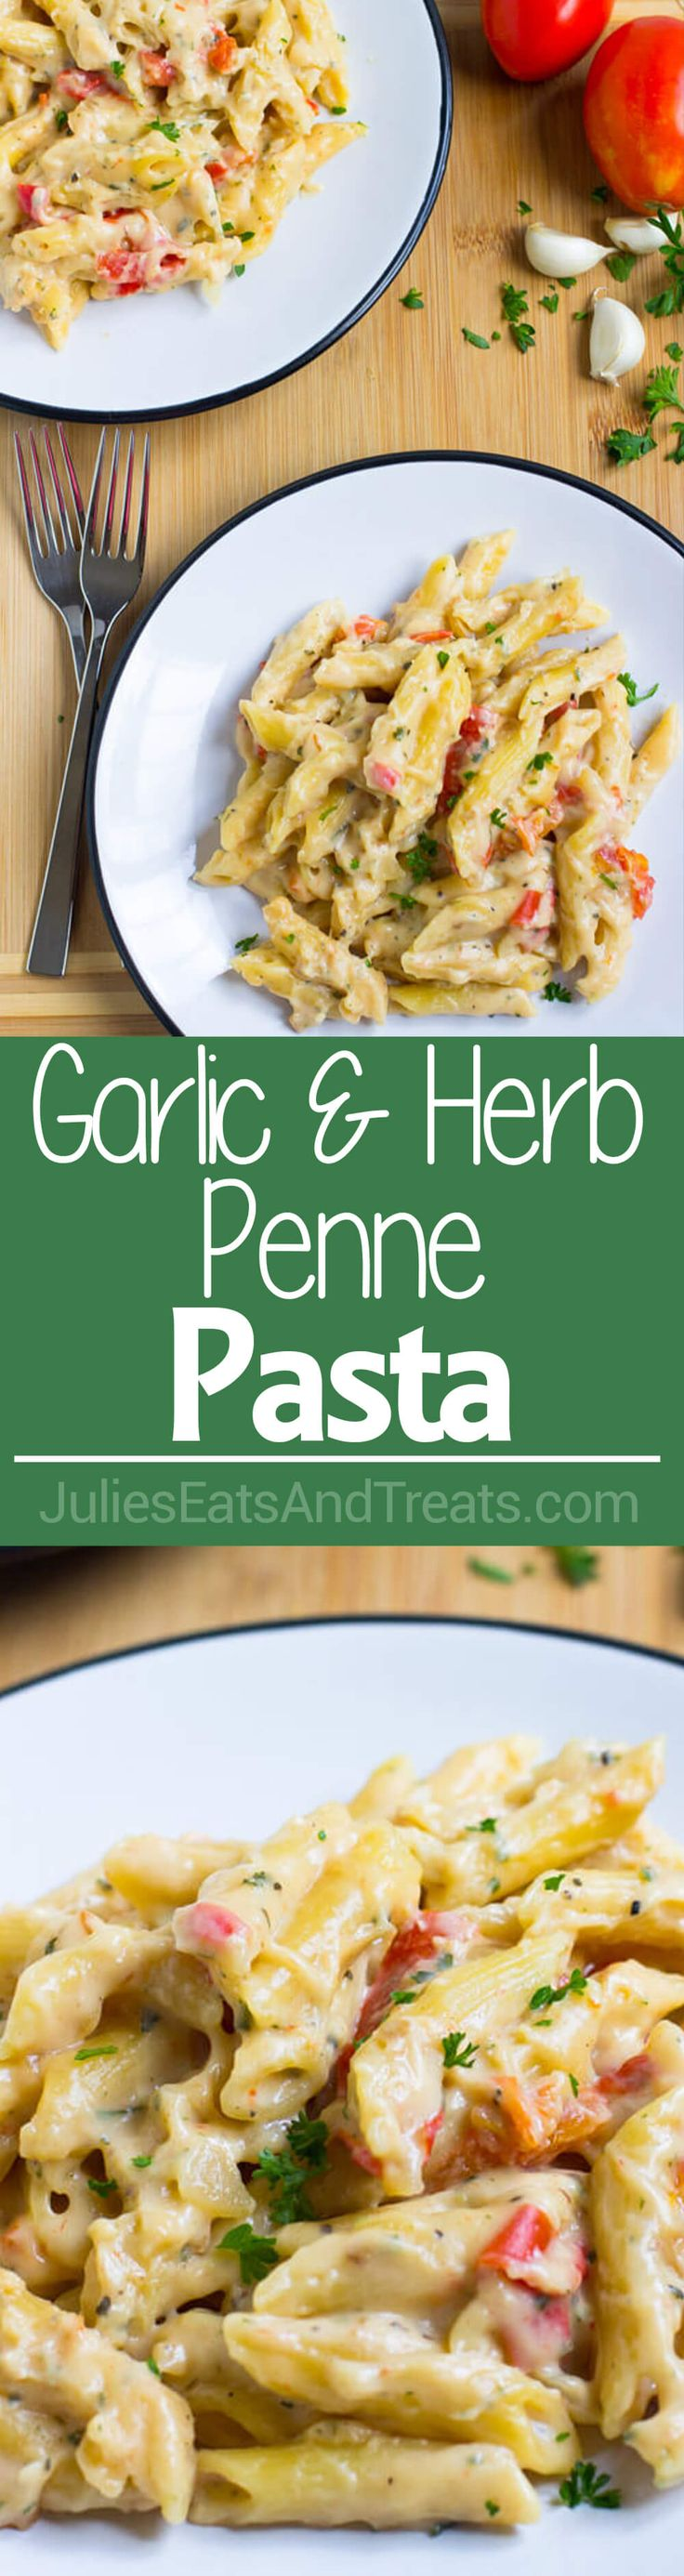 Garlic and Herb Penne Pasta Recipe ~ Quick, Easy, Delicious Pasta Dinner Ready in 20 Minutes! Loaded with Garlic, Tomato and Cheese!